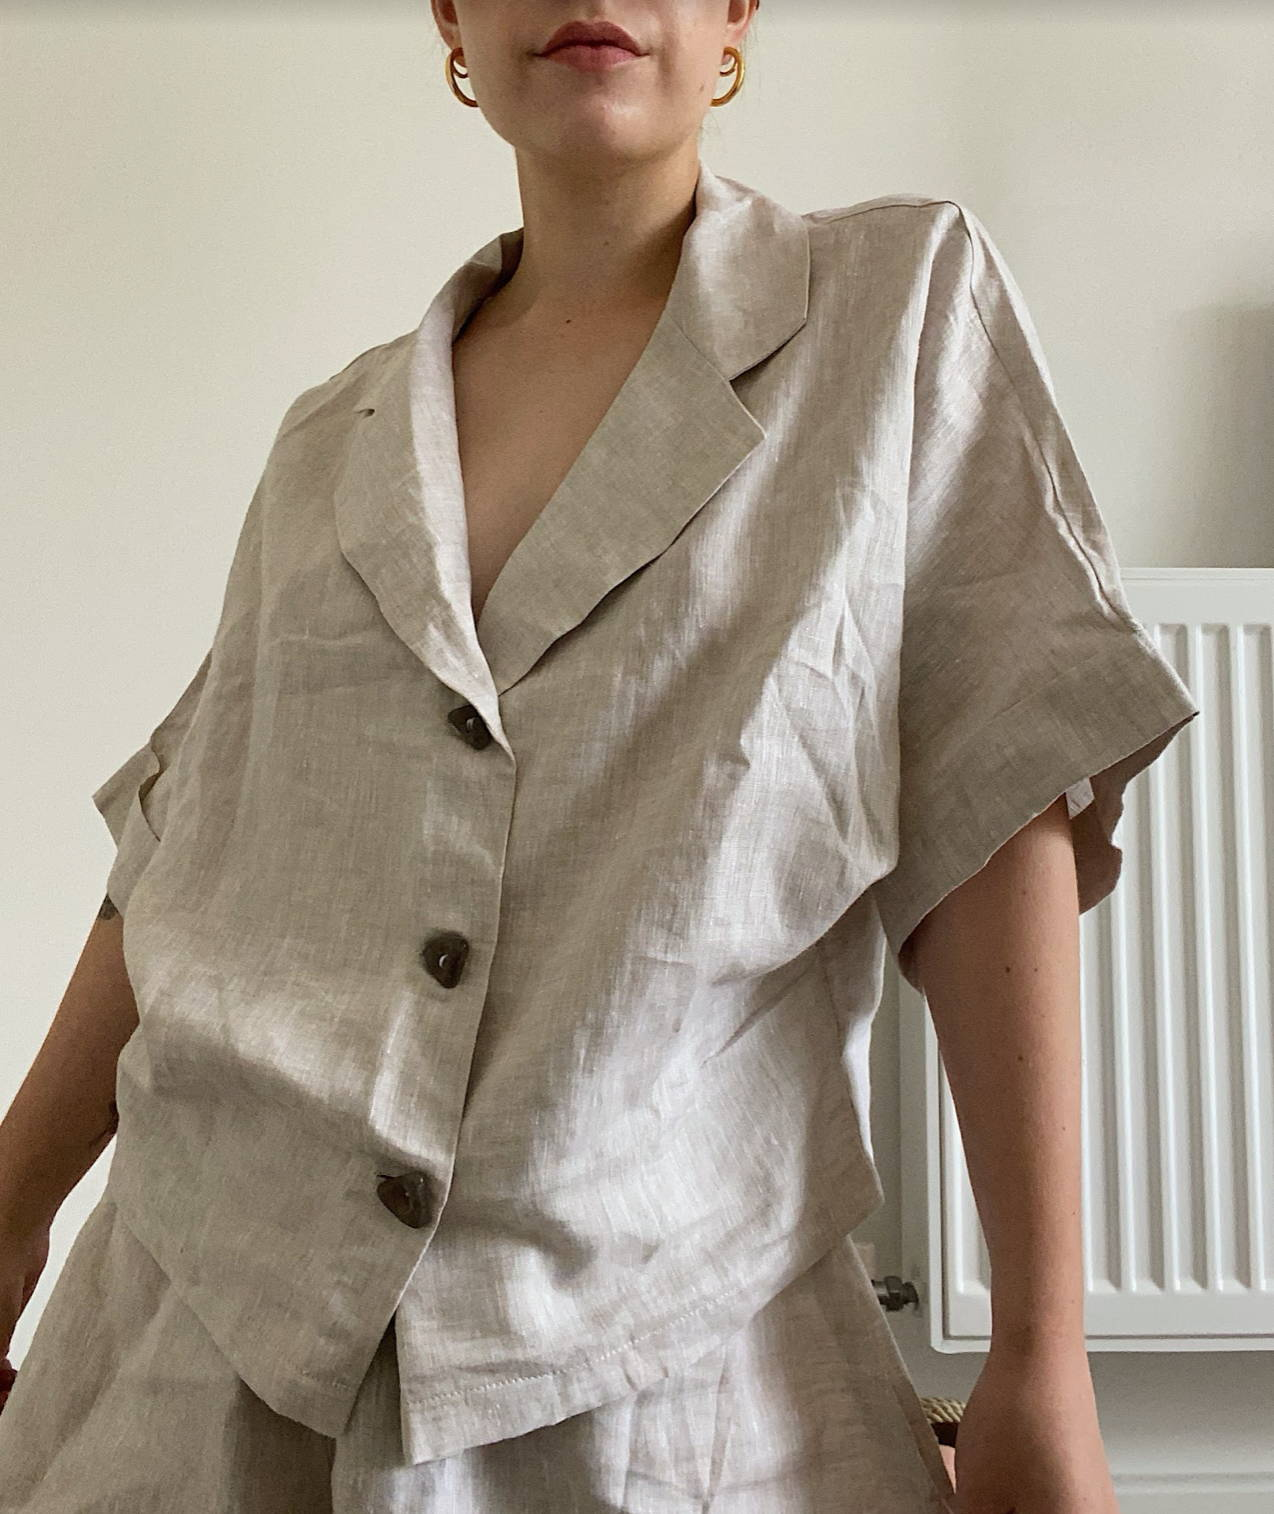 Fanfare Label Sustainable Women's Clothing Brand, shop our ethical linen sets.